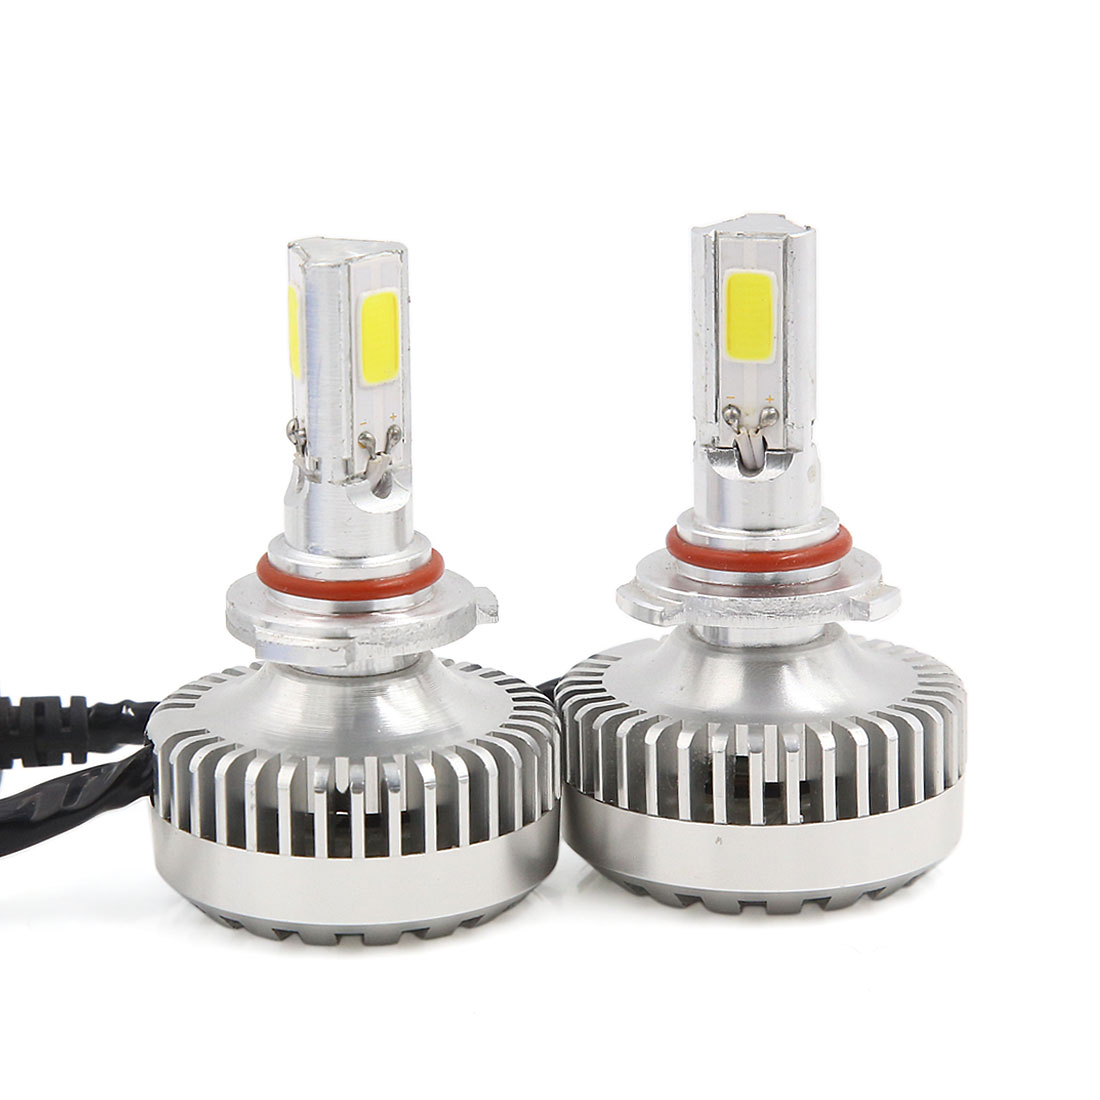 2 x 40W 9005 COB LED Headlight Bulbs Kit 6000K 4000LM + LED Canbus Kit (1 pair)